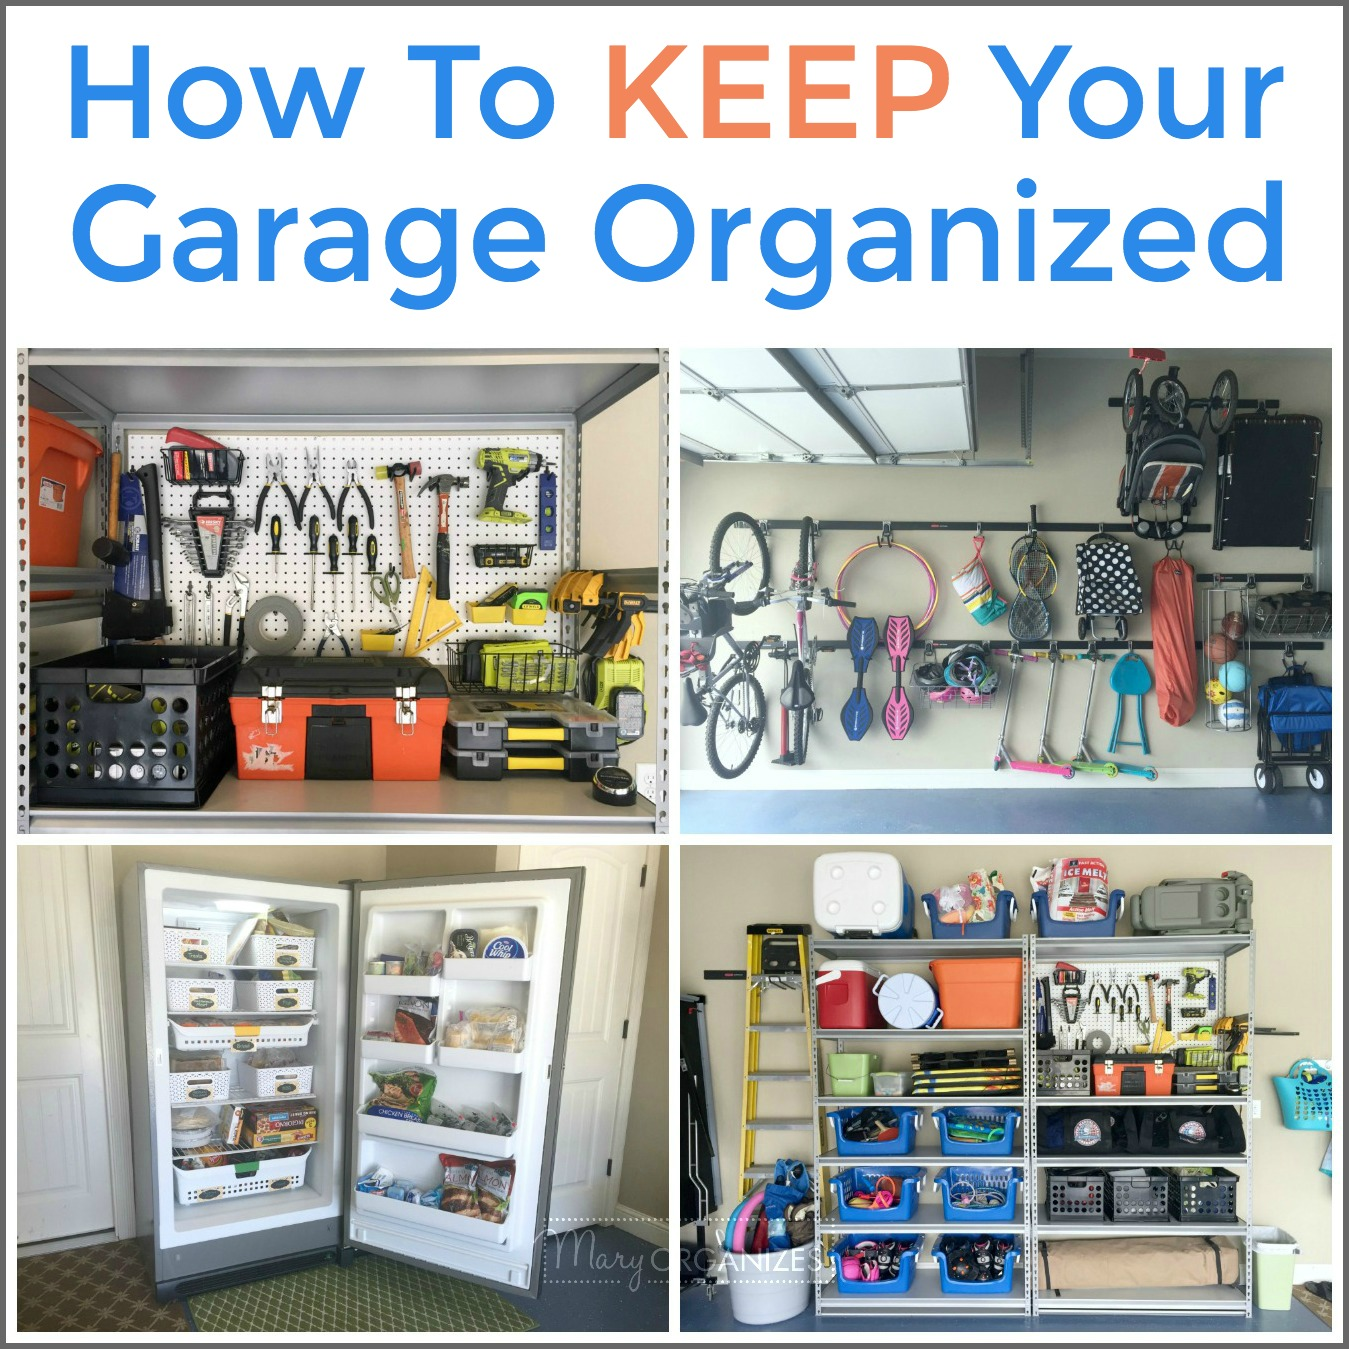 How To Organize A Stand Up Freezer In The Garage Creatingmaryshome